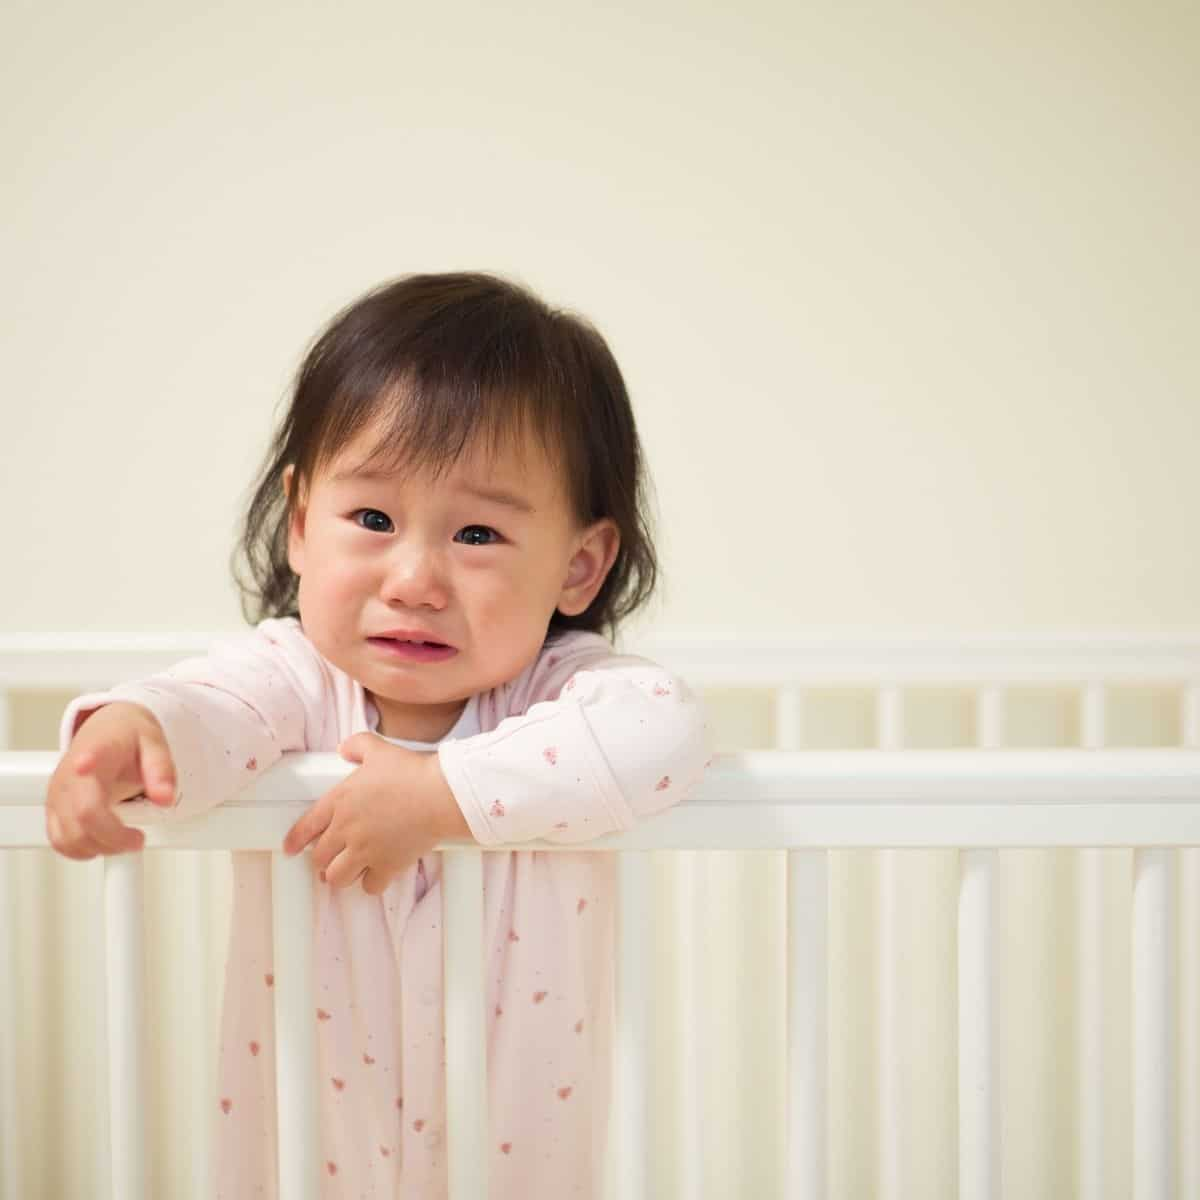 baby girl is crying while standing in her crib